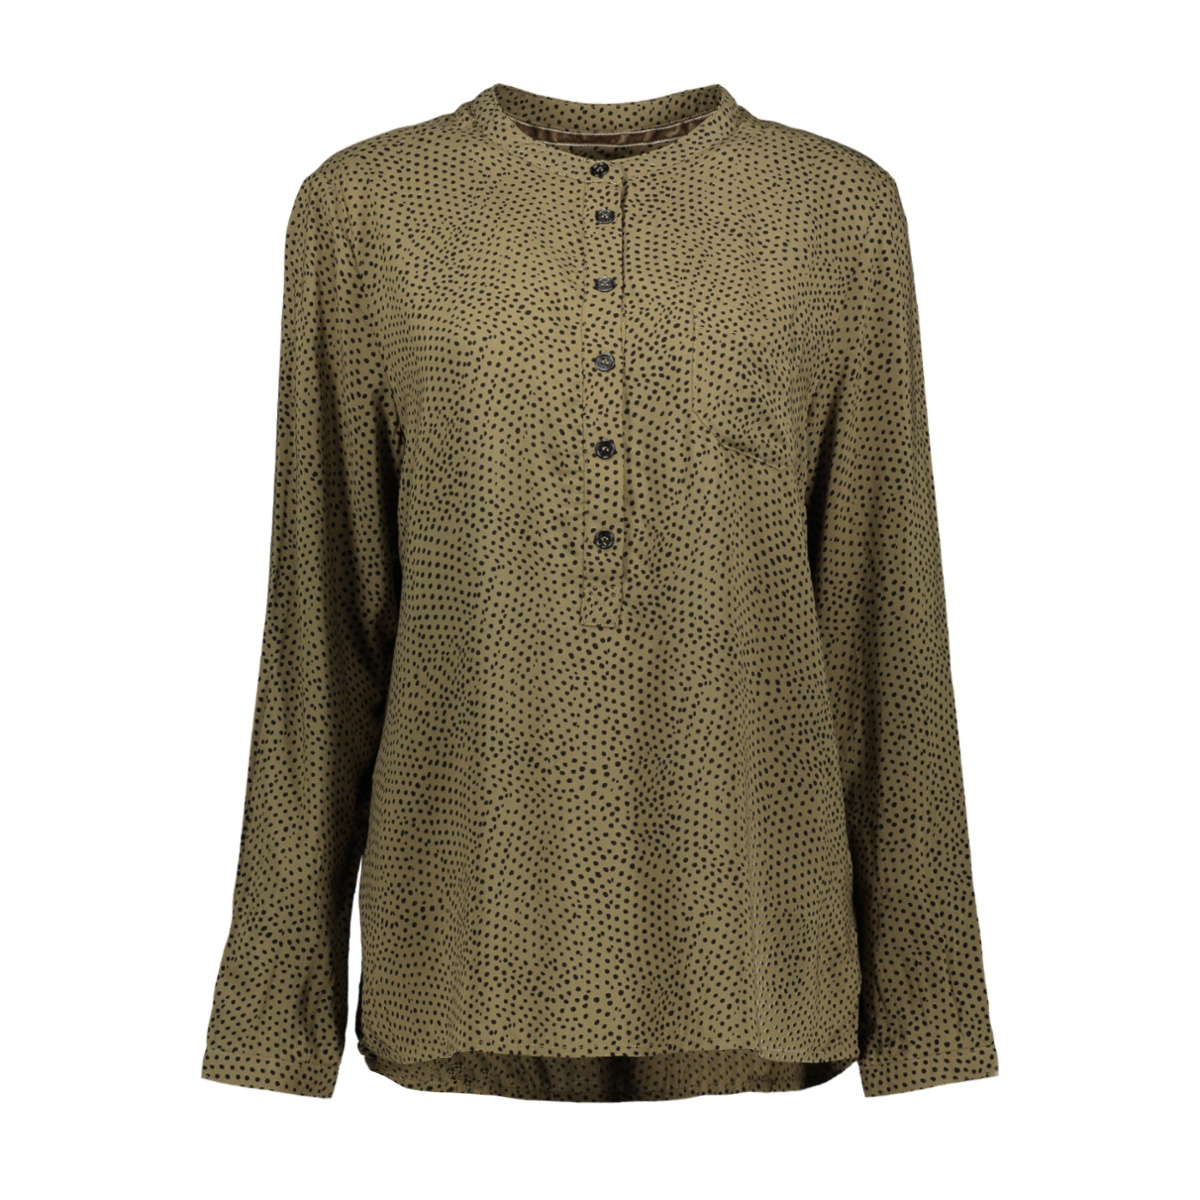 palma blouse s19 59 8218 circle of trust blouse 8218 dark olive